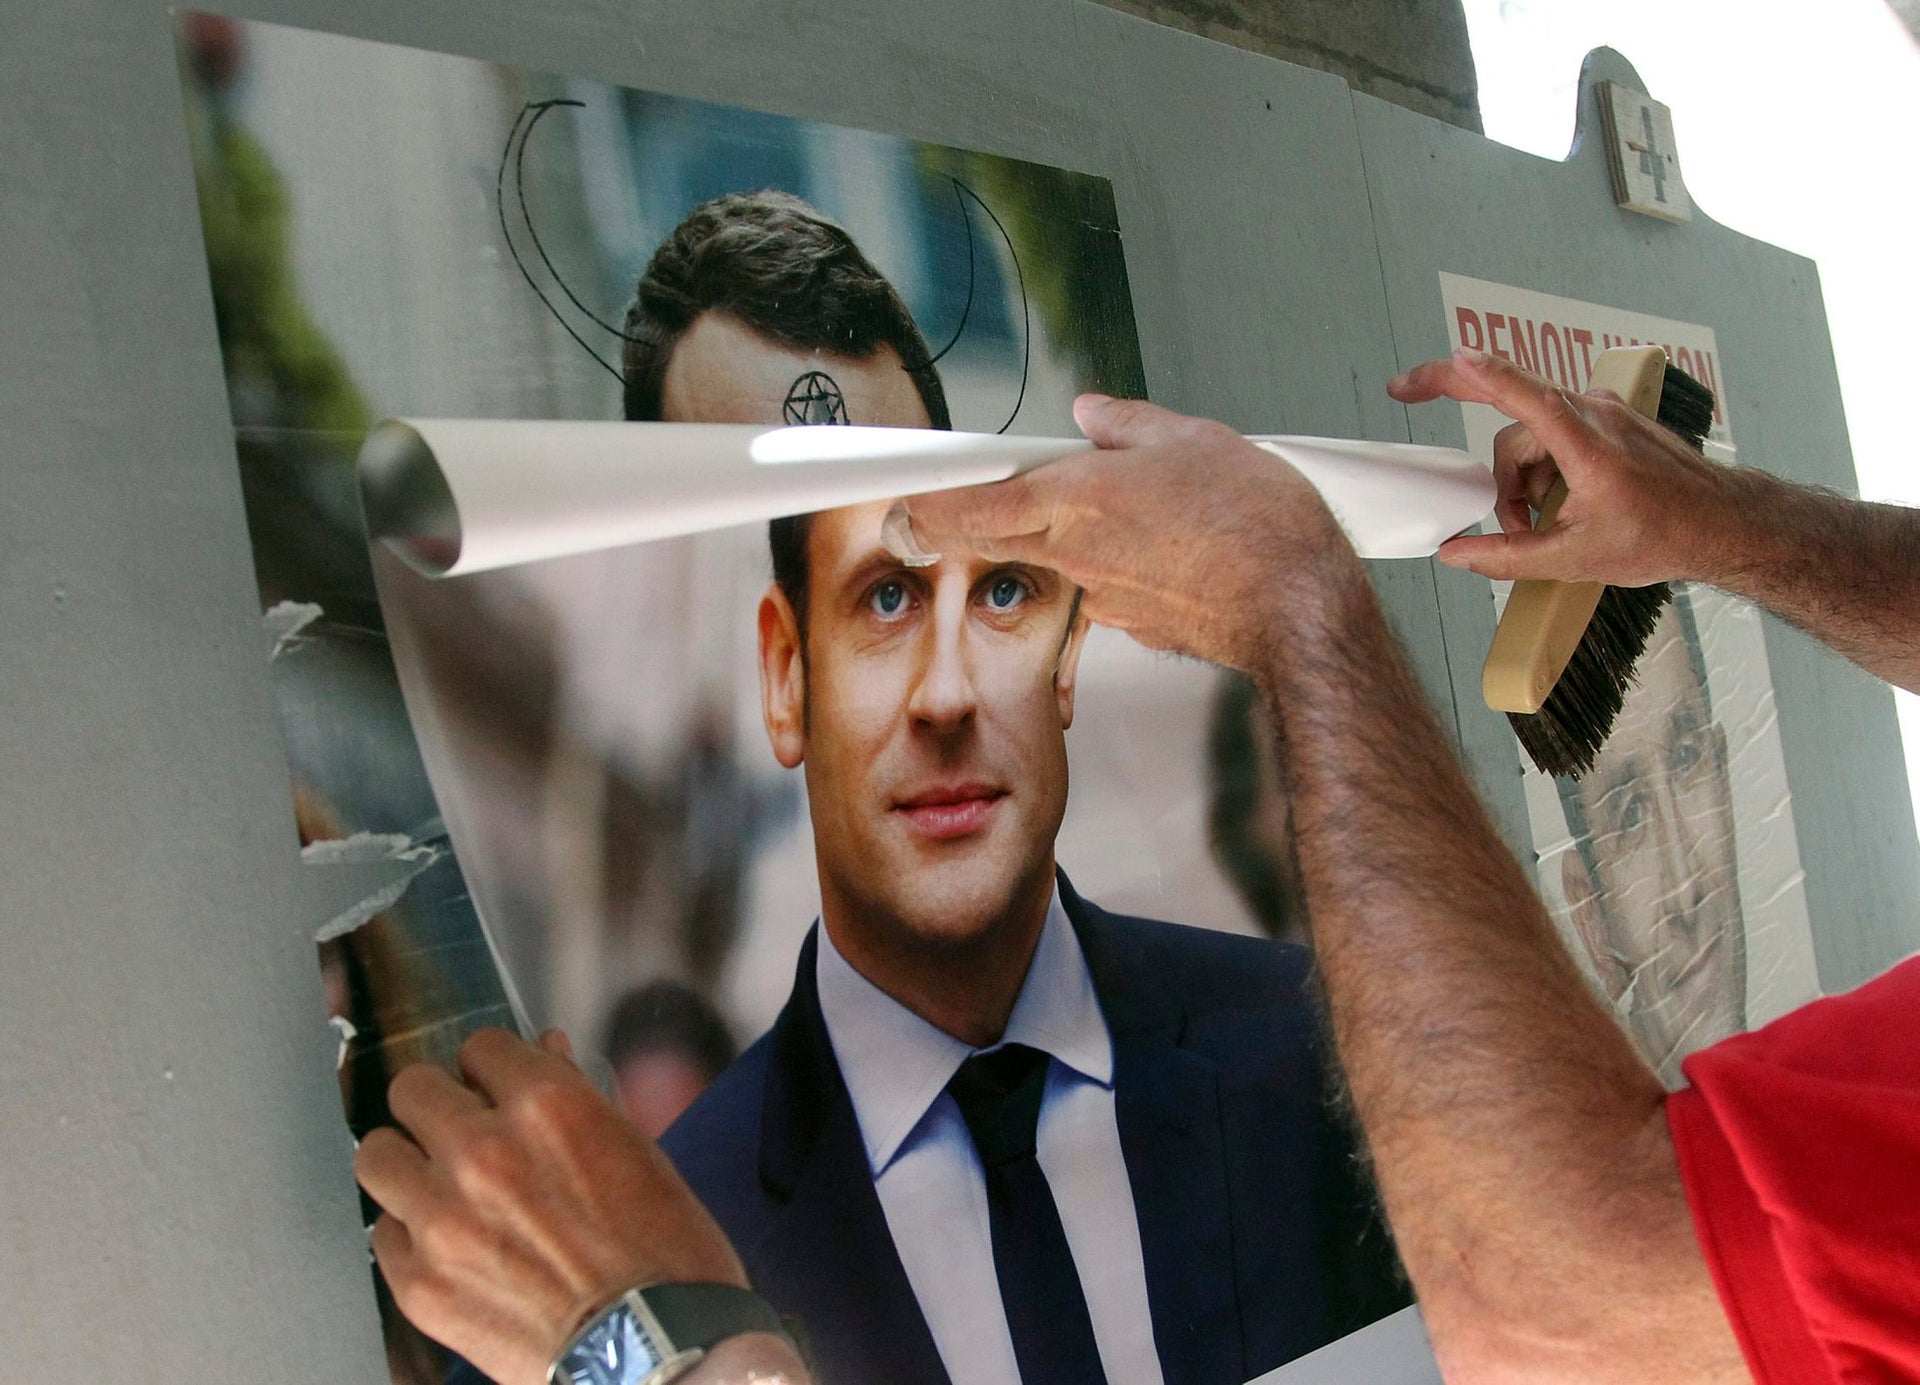 A supporter of French centrist presidential candidate Emmanuel Macron, sticks a campaign poster in Bayonne, southwestern France, April 19, 2017.